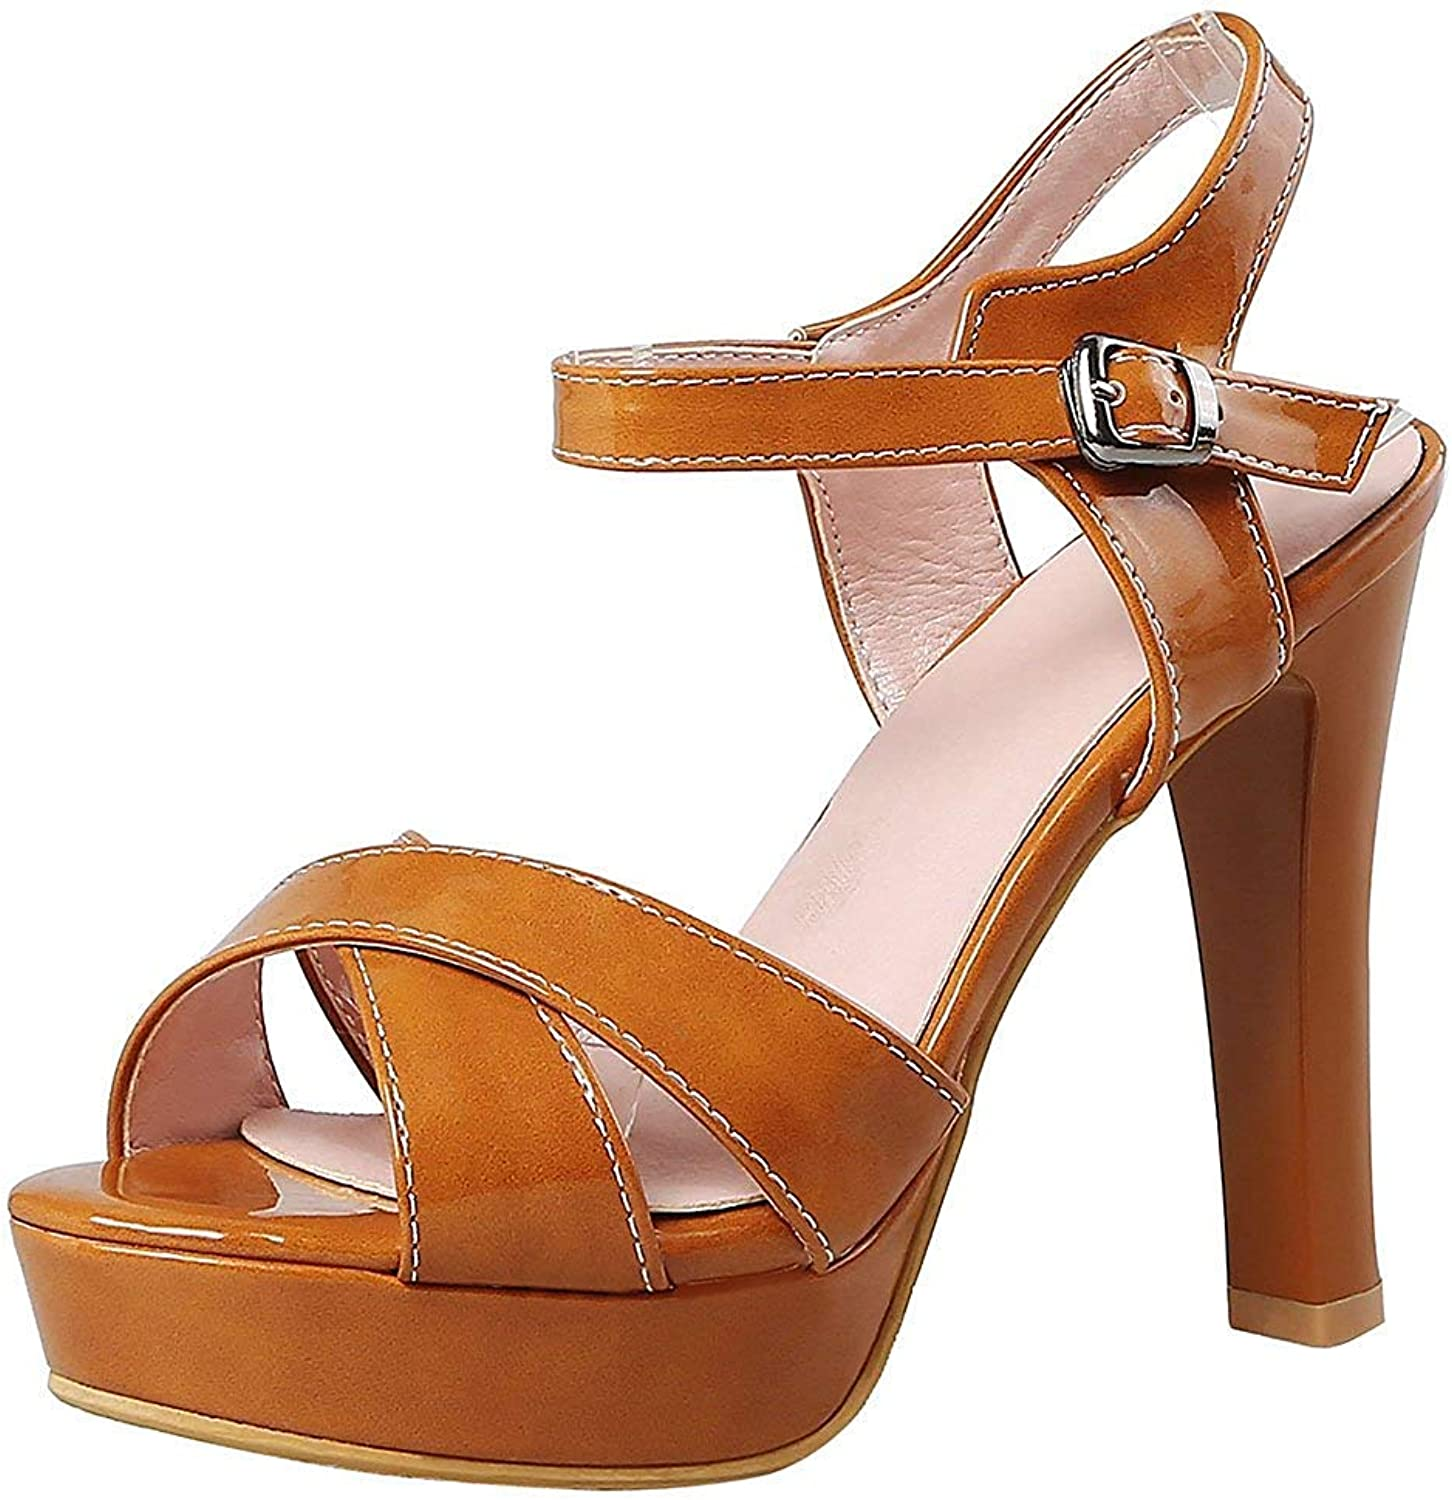 Wallhewb Women's Sexy Ankle Strap Buckle Peep Toe Sandals Platform Chunky High Heels shoes Easy to Match Sweet Elegant Leg Length Girl Onsale Comfortable Antiskit Dress Brown 6 M US High Hees shoes